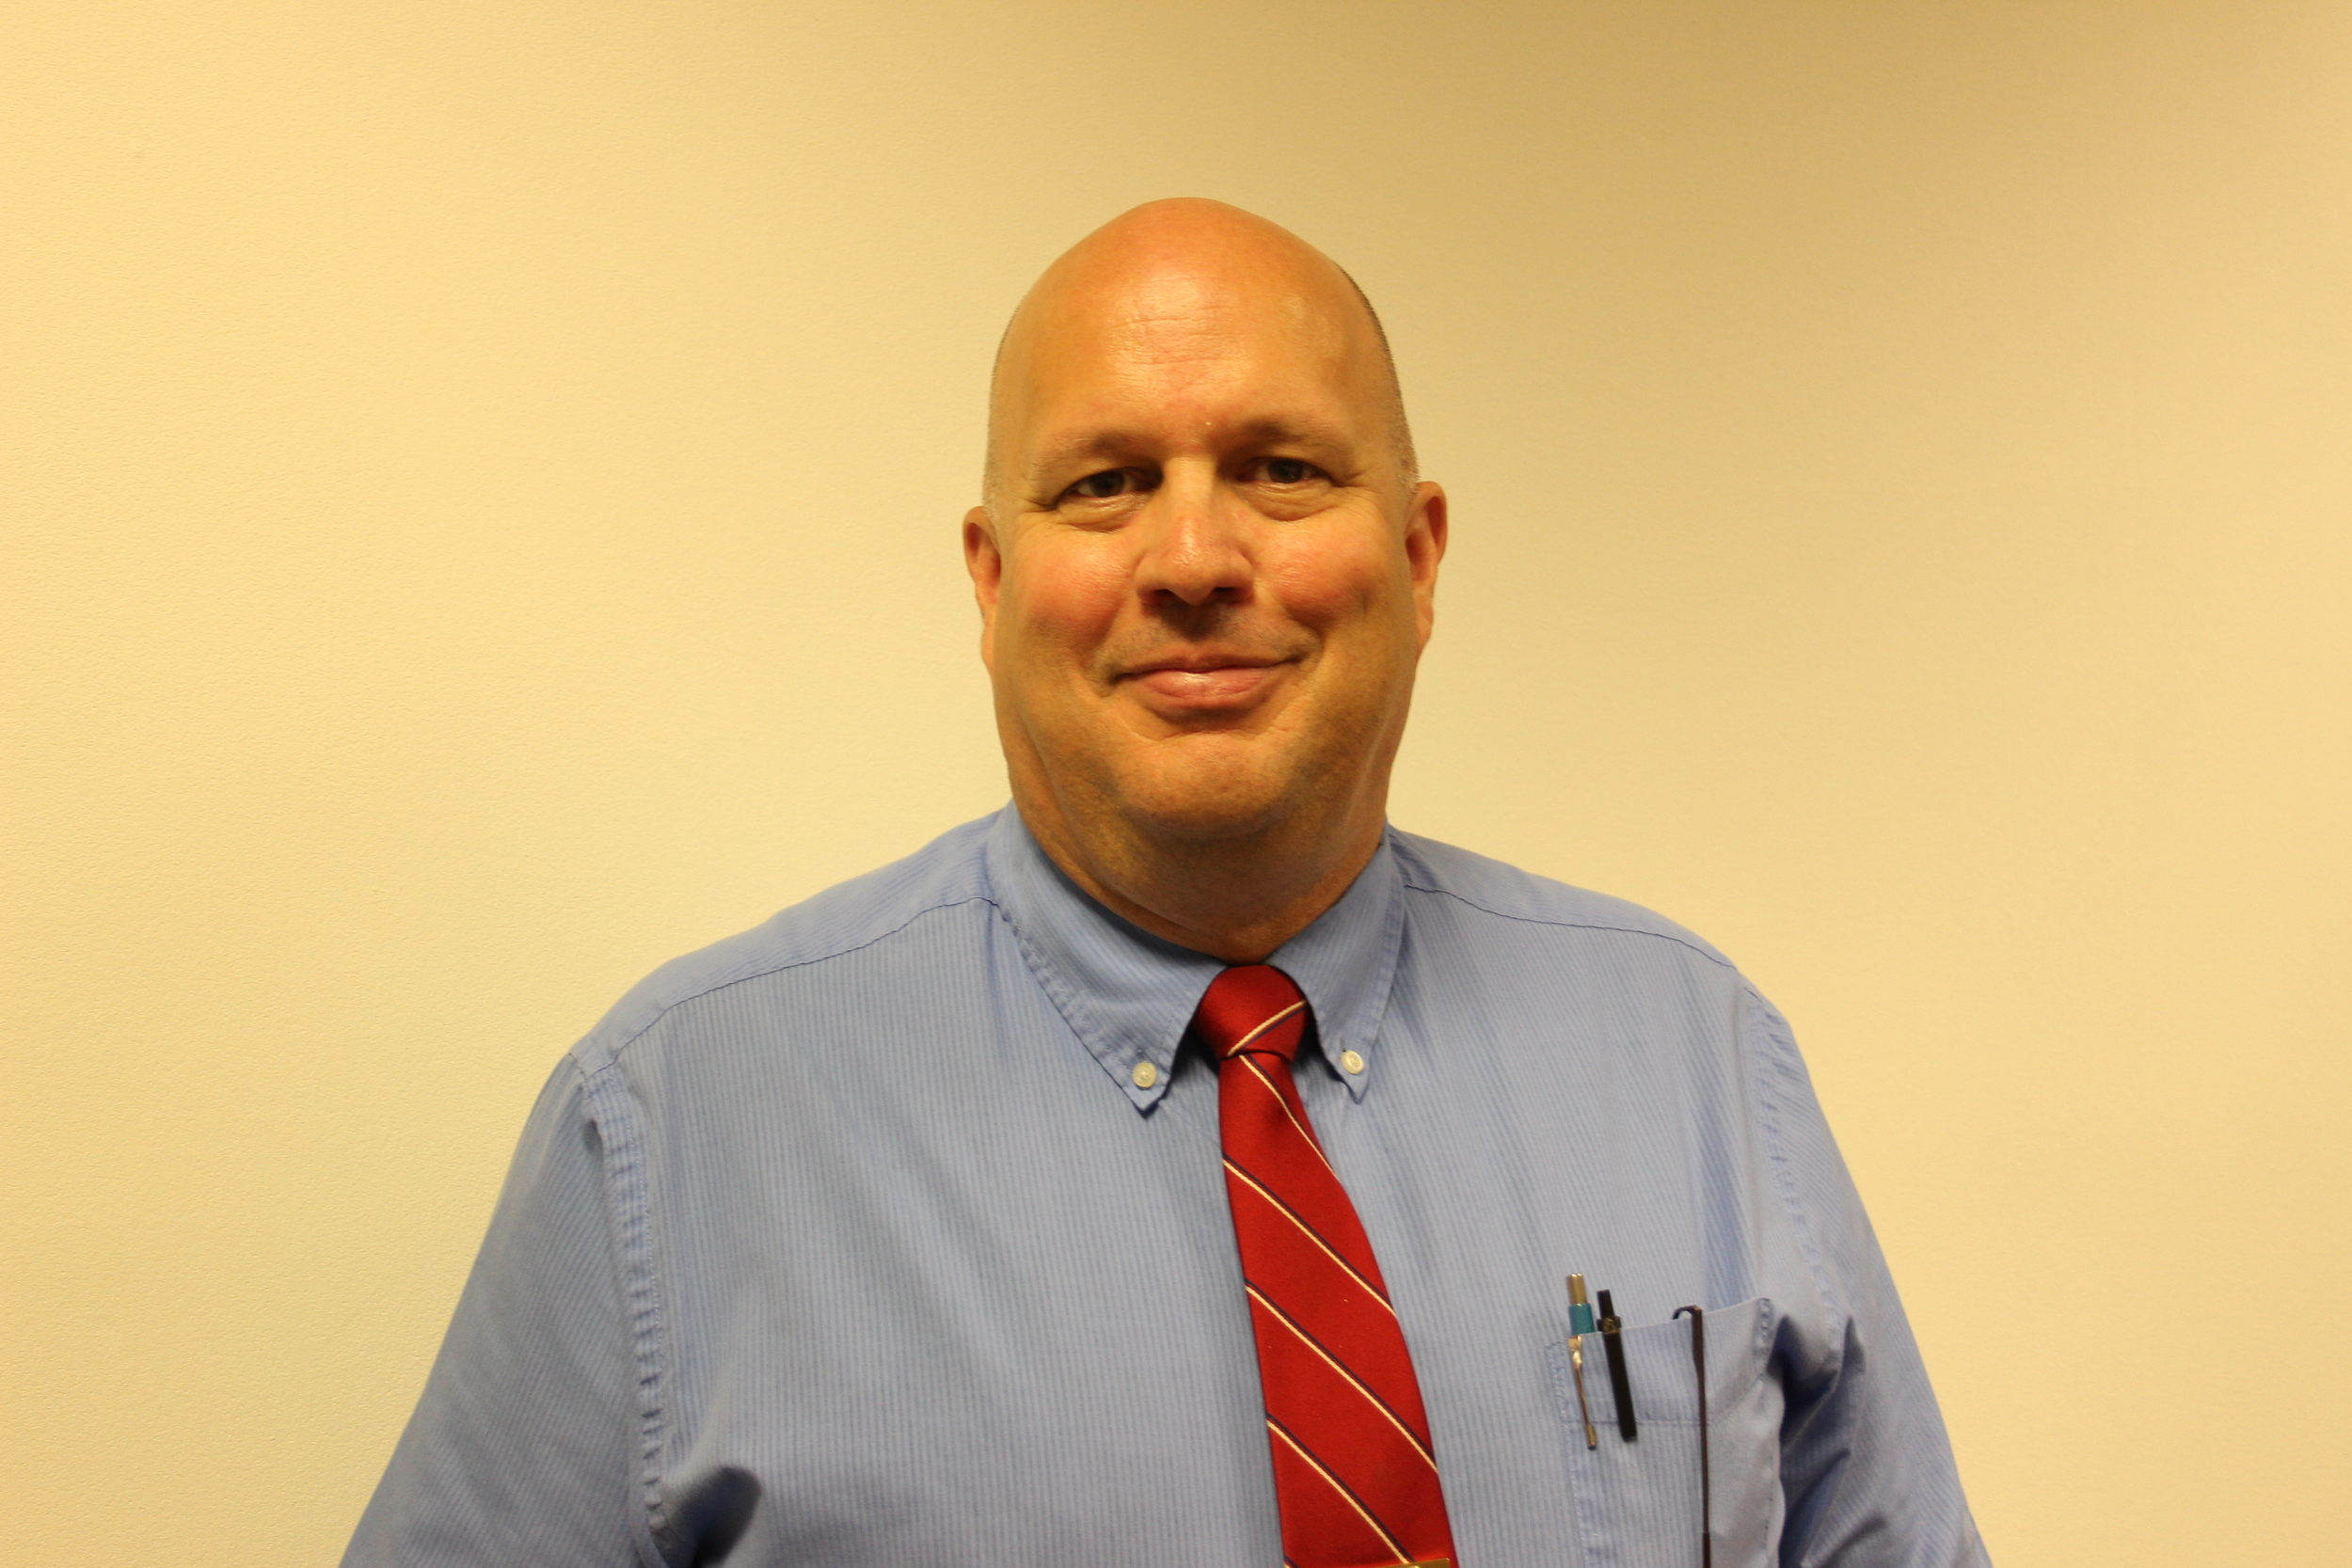 Mr. Larry Kennedy - New Counselor